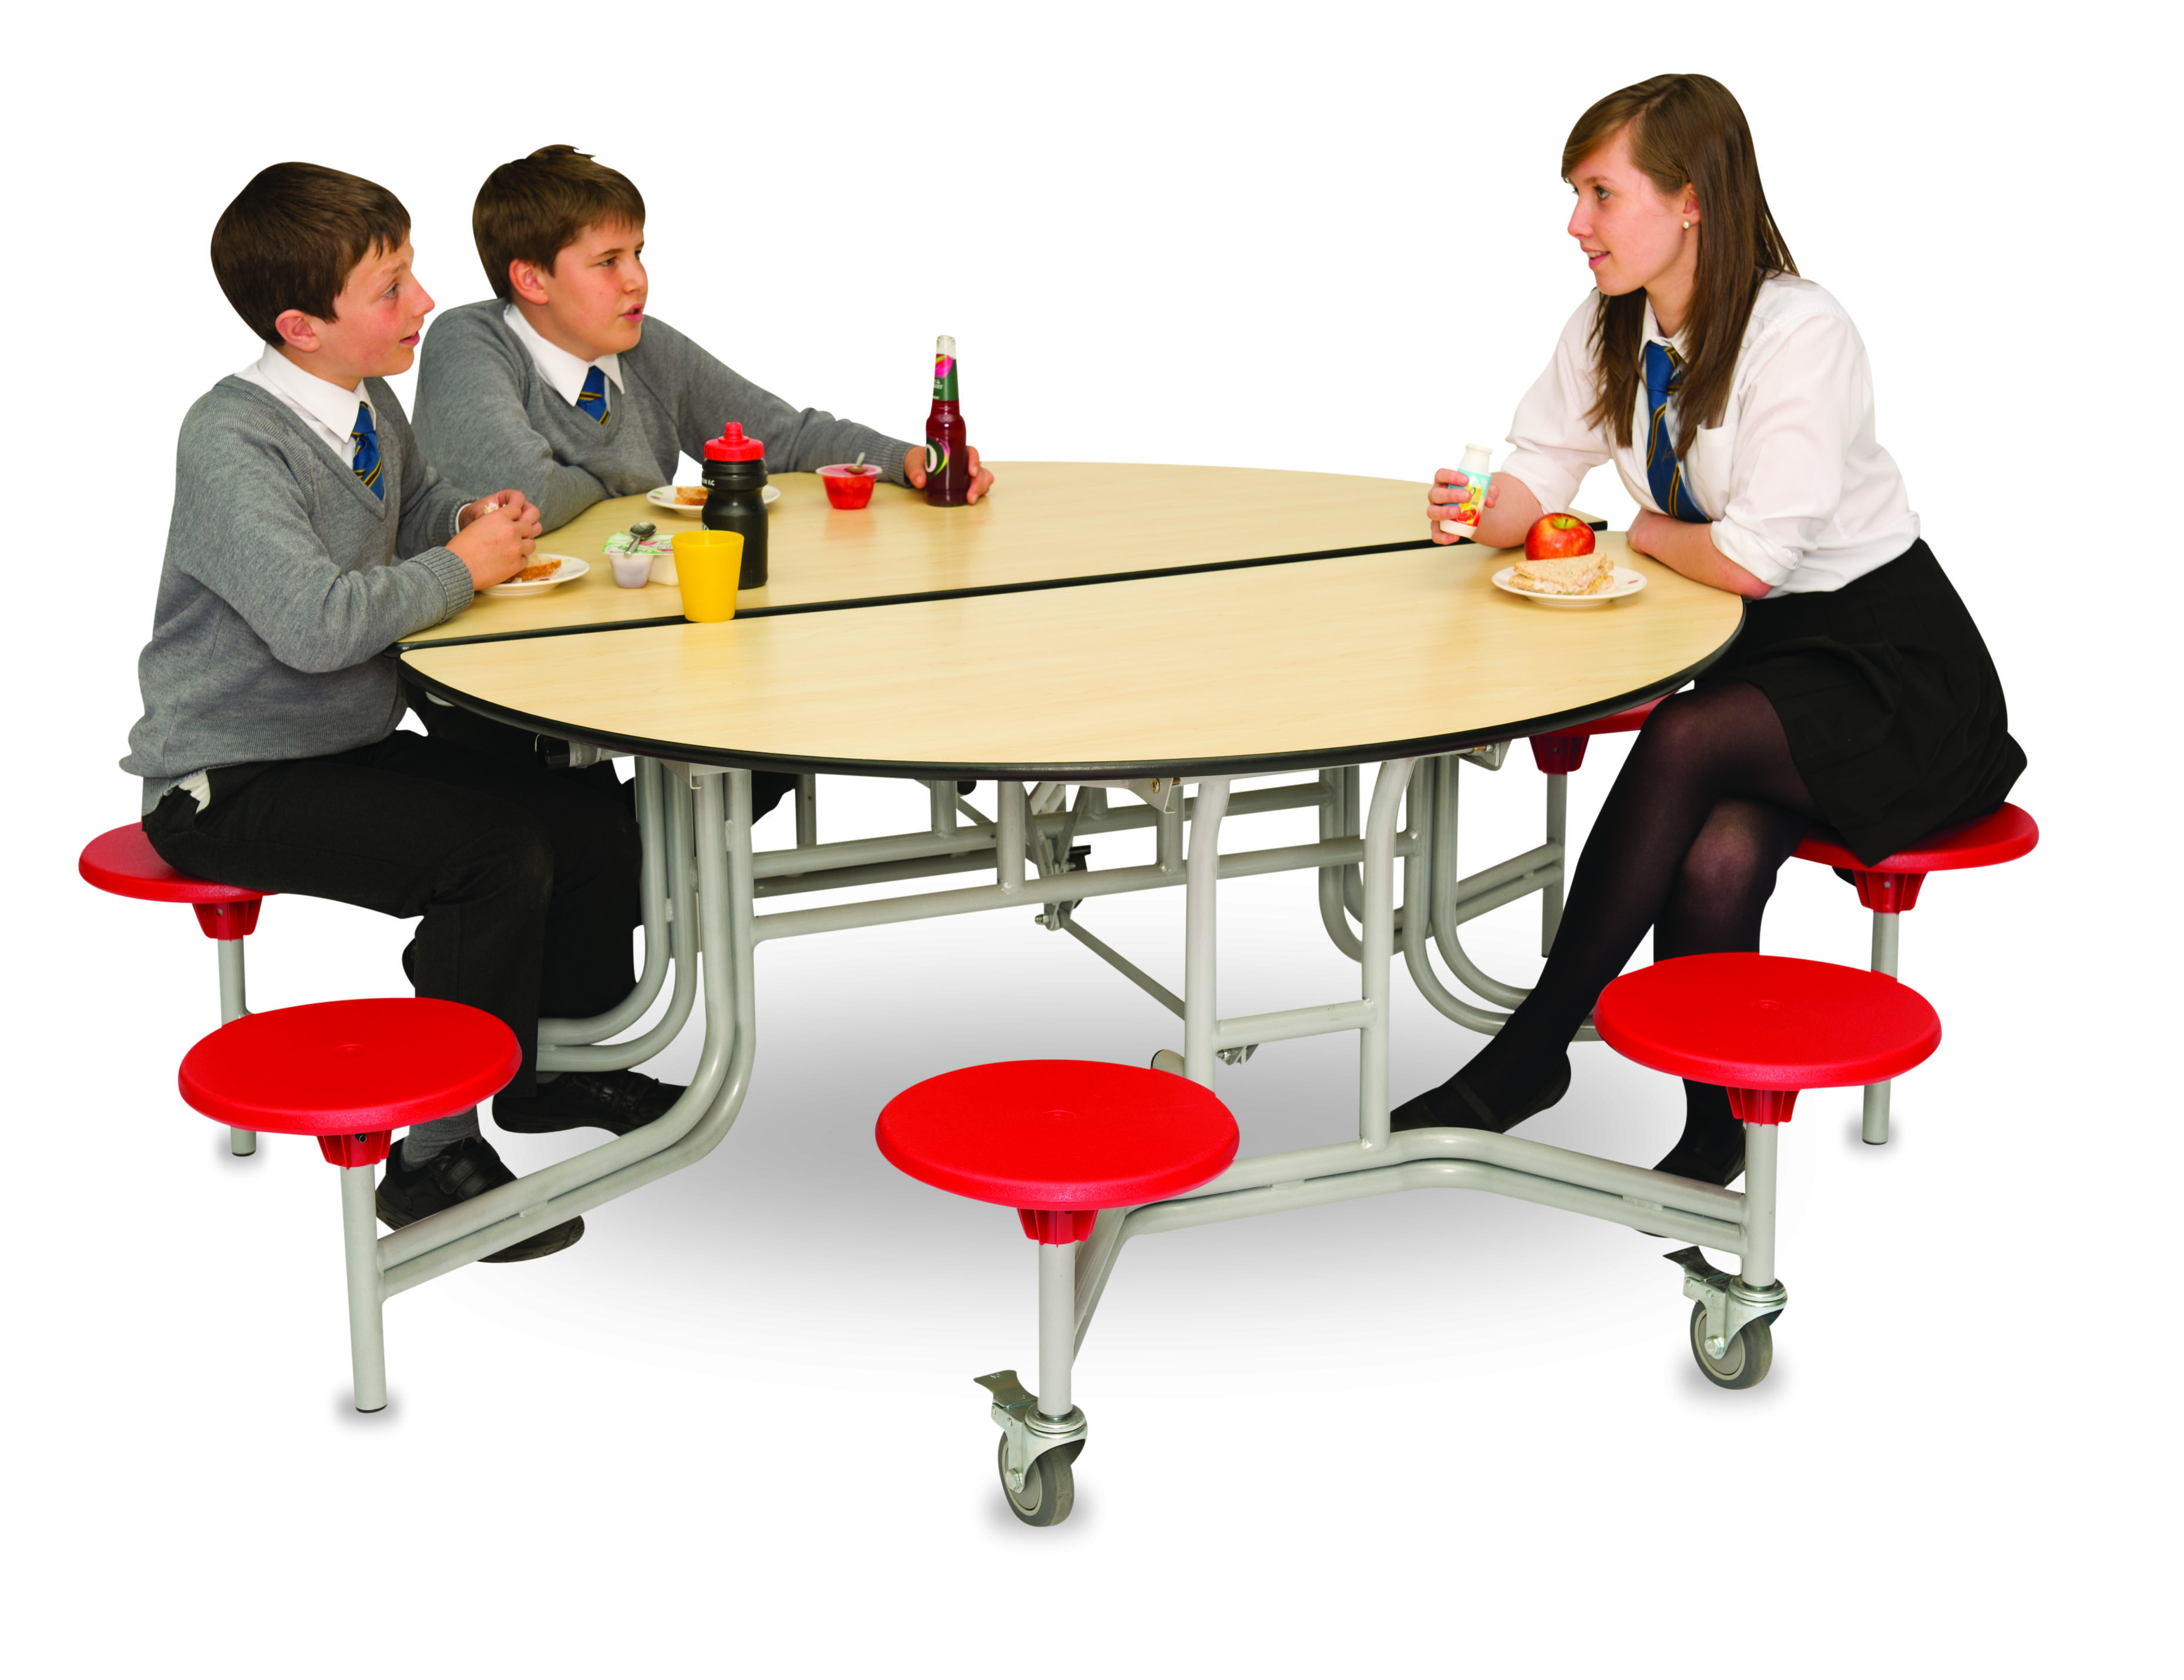 Round Mobile Folding Table with 8 Seats